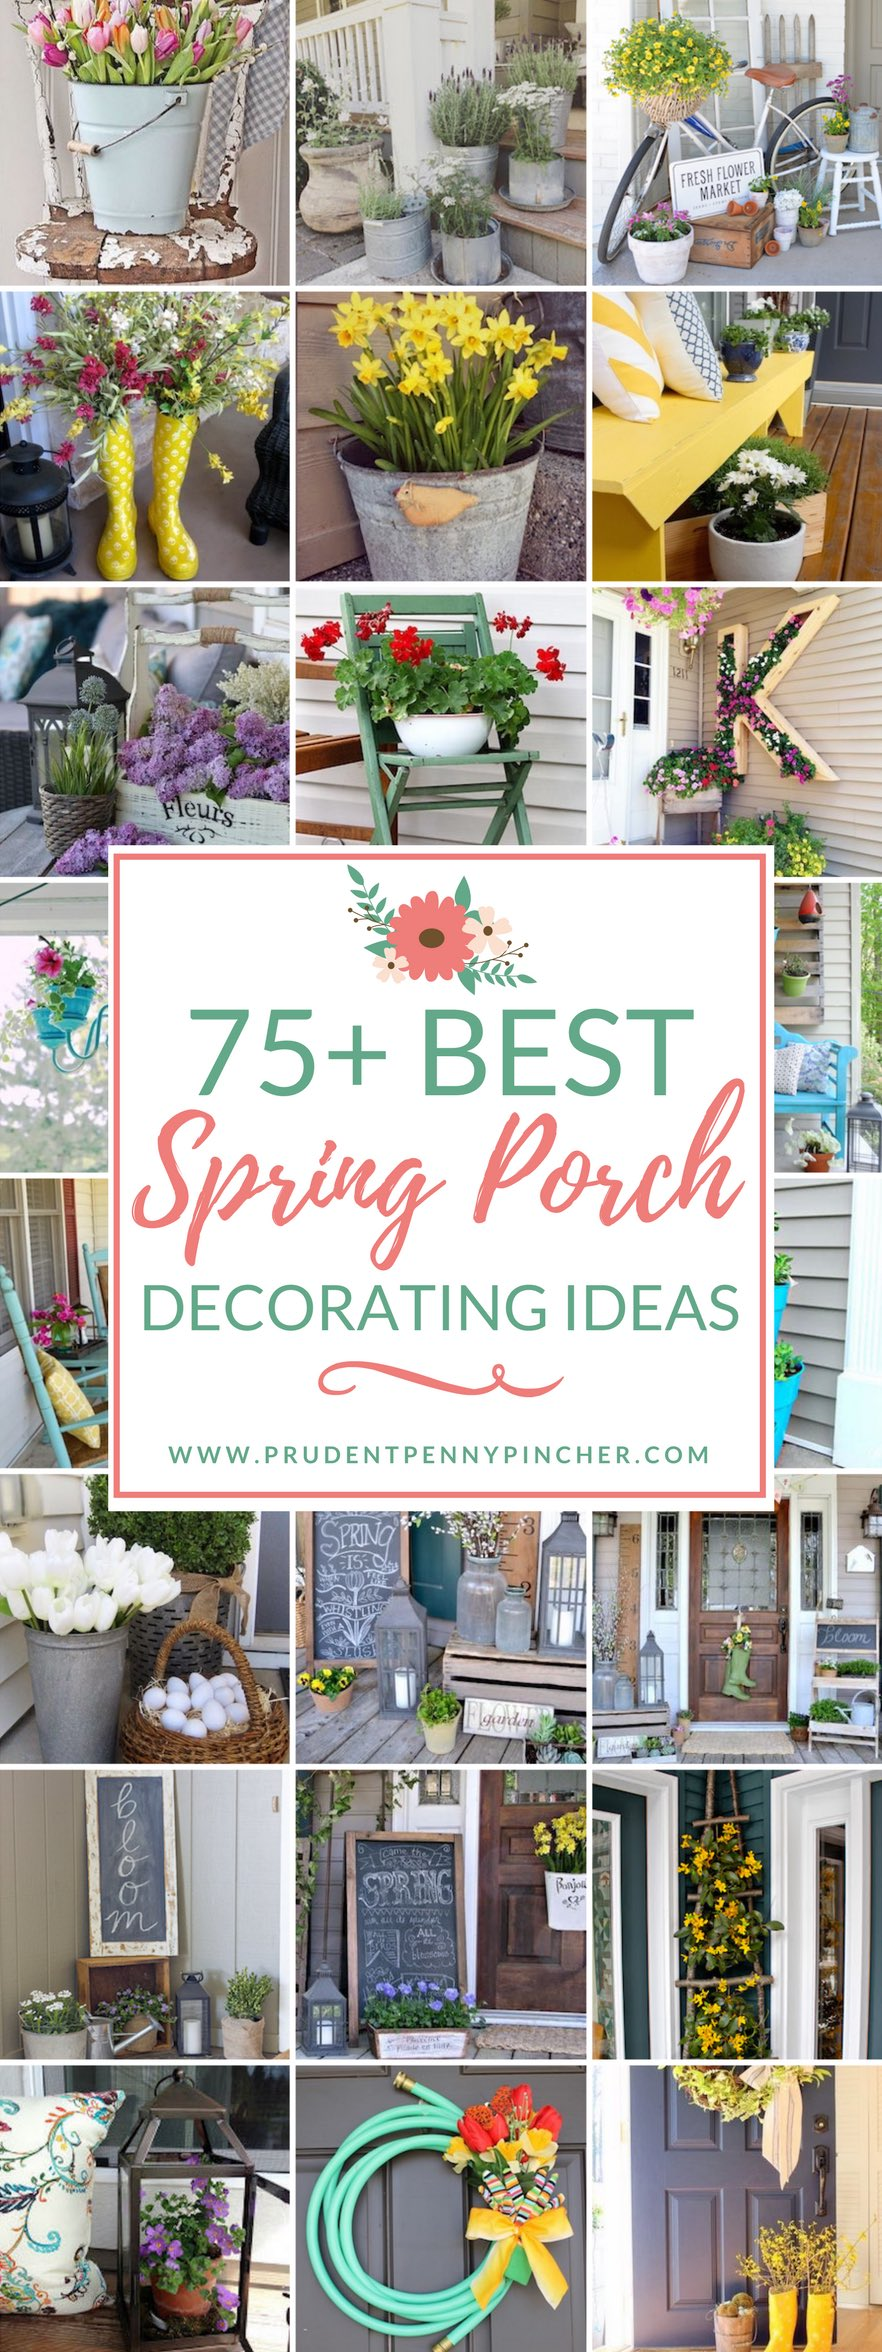 75 Best Spring Porch Ideas